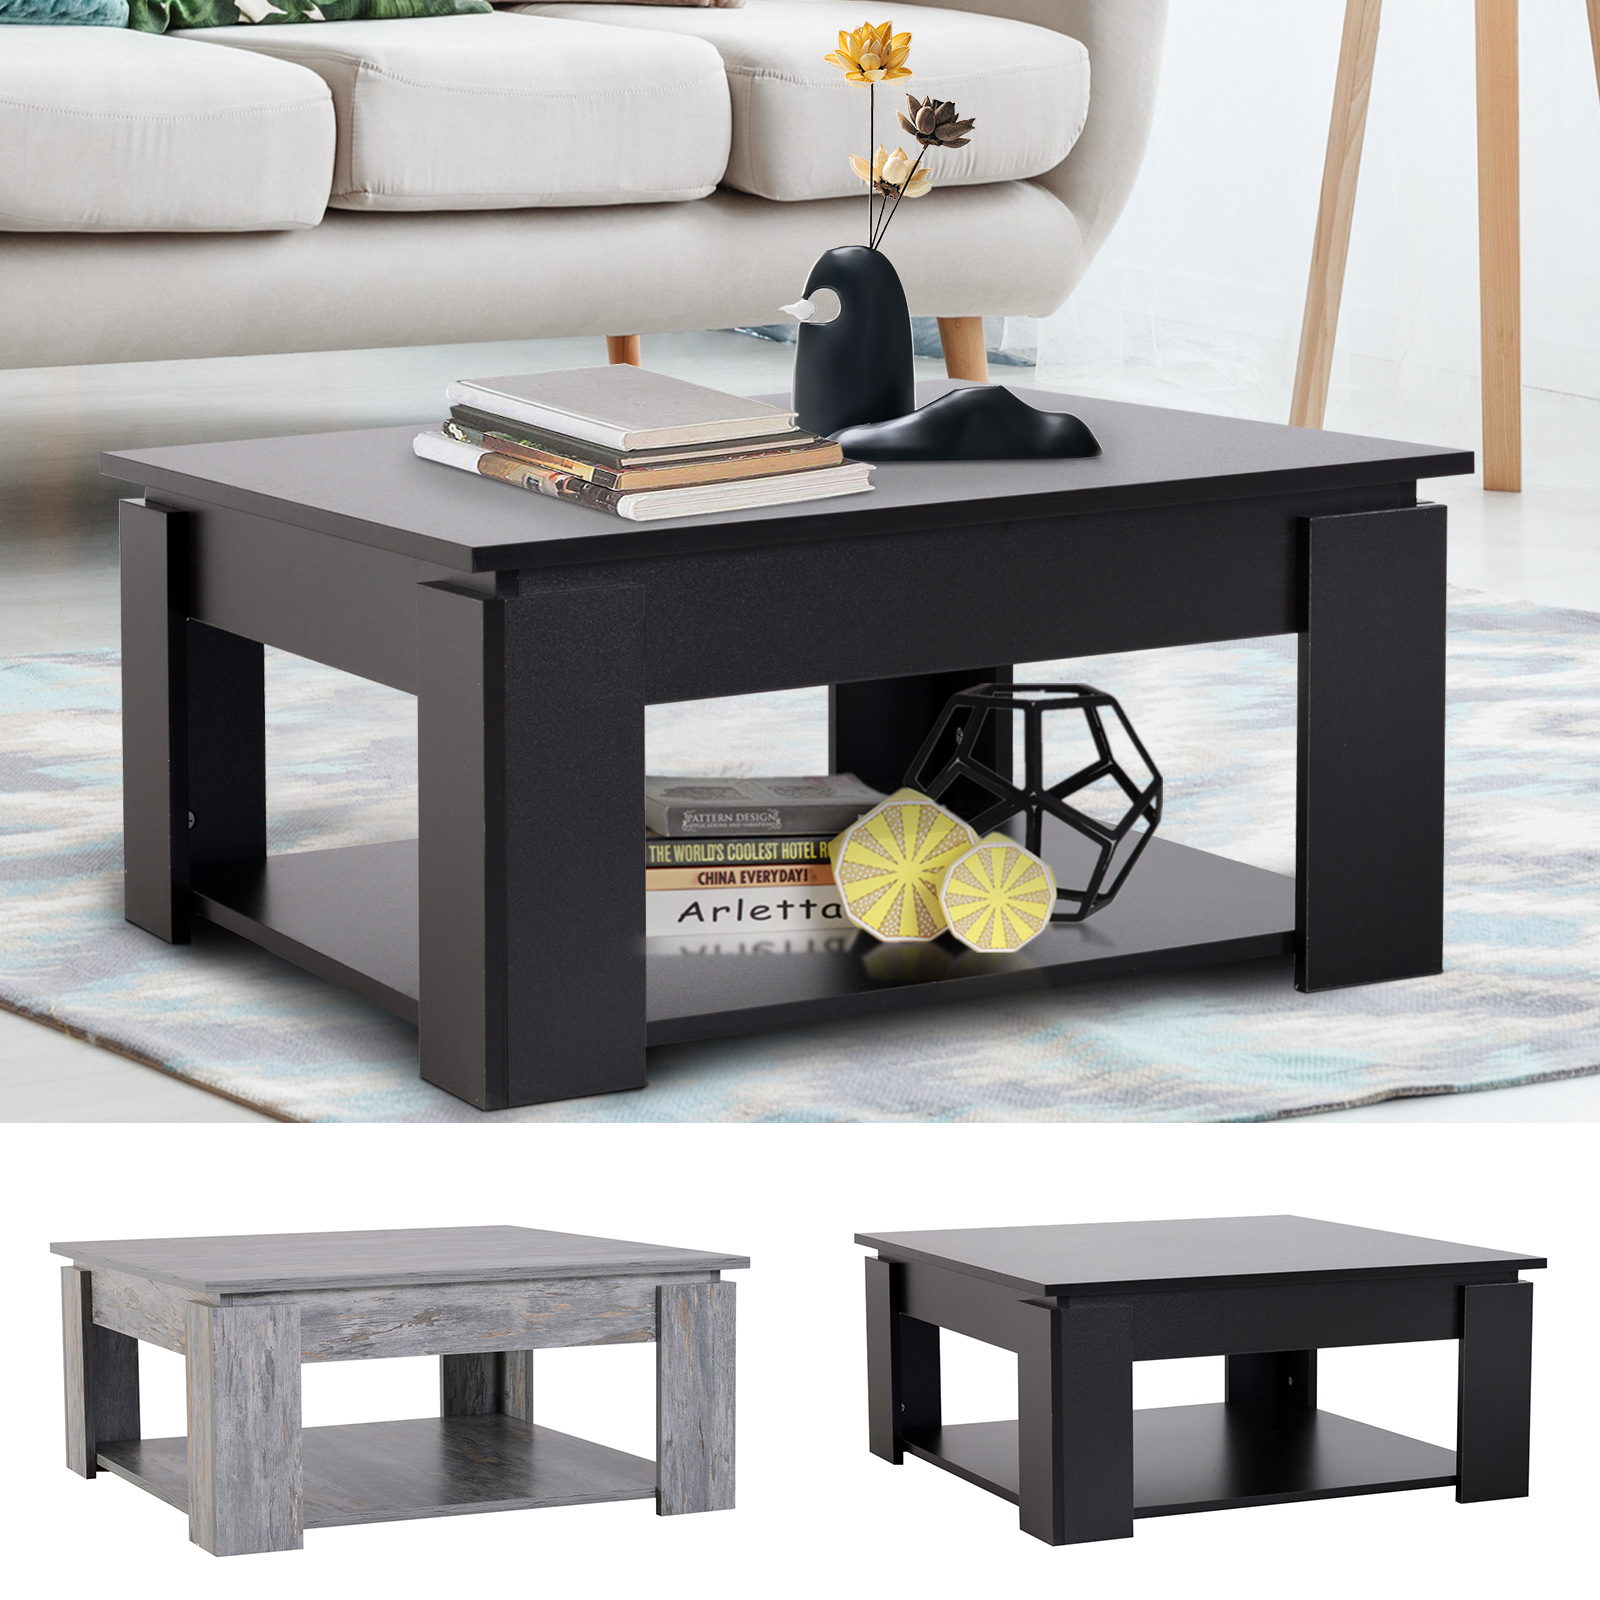 Picture of: 2 Tier Modern Coffee Table Accent Console End Table Living Room Bottom Shelf Ebay